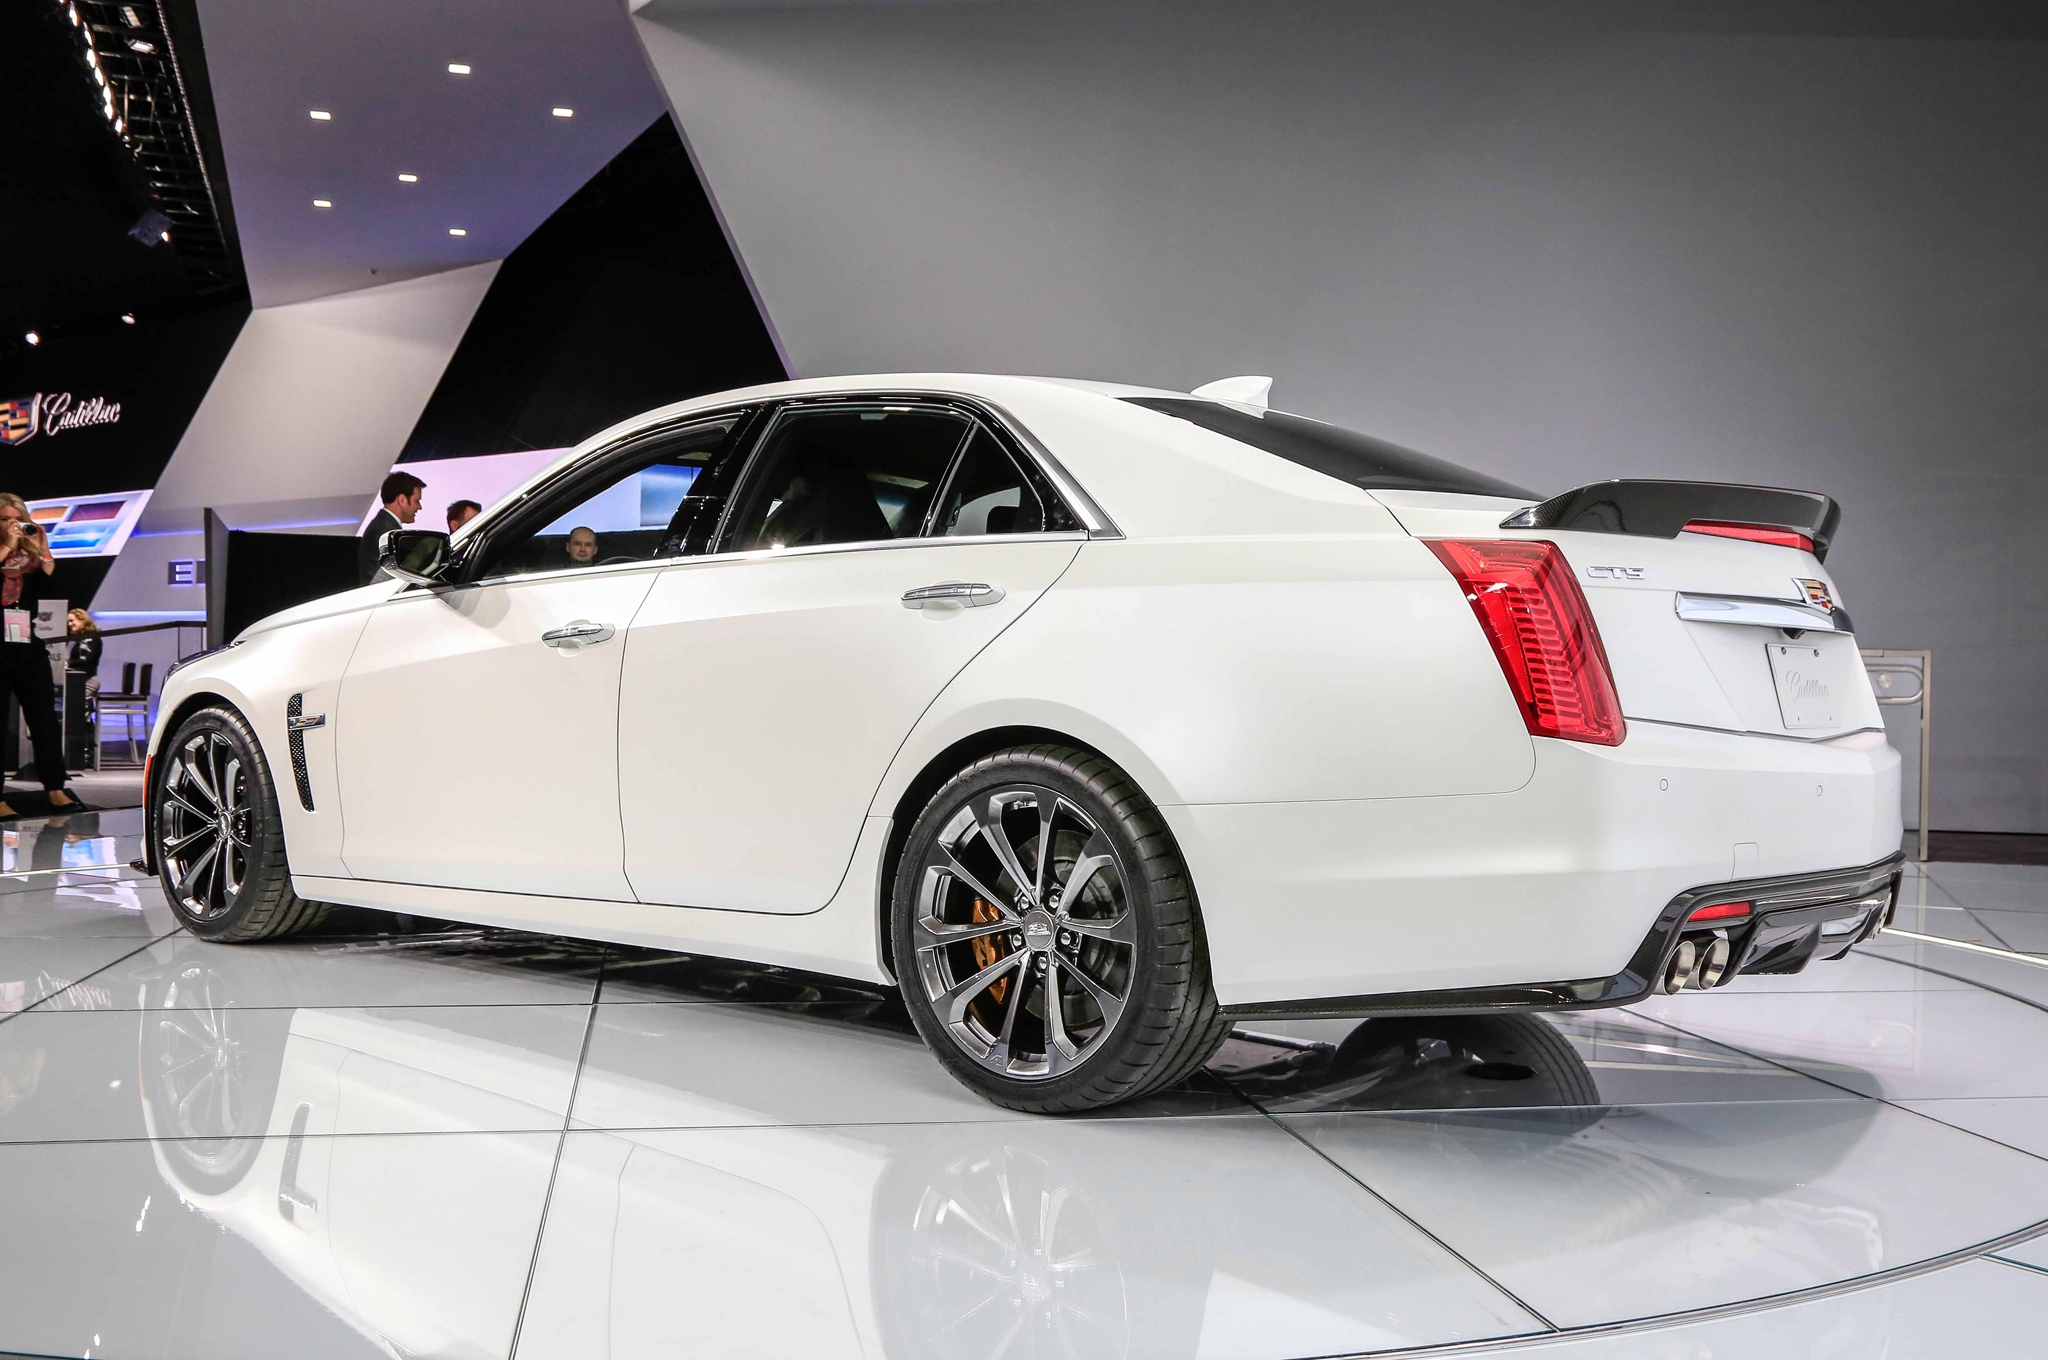 2016 Cadillac Sts – pictures, information and specs - Auto ...